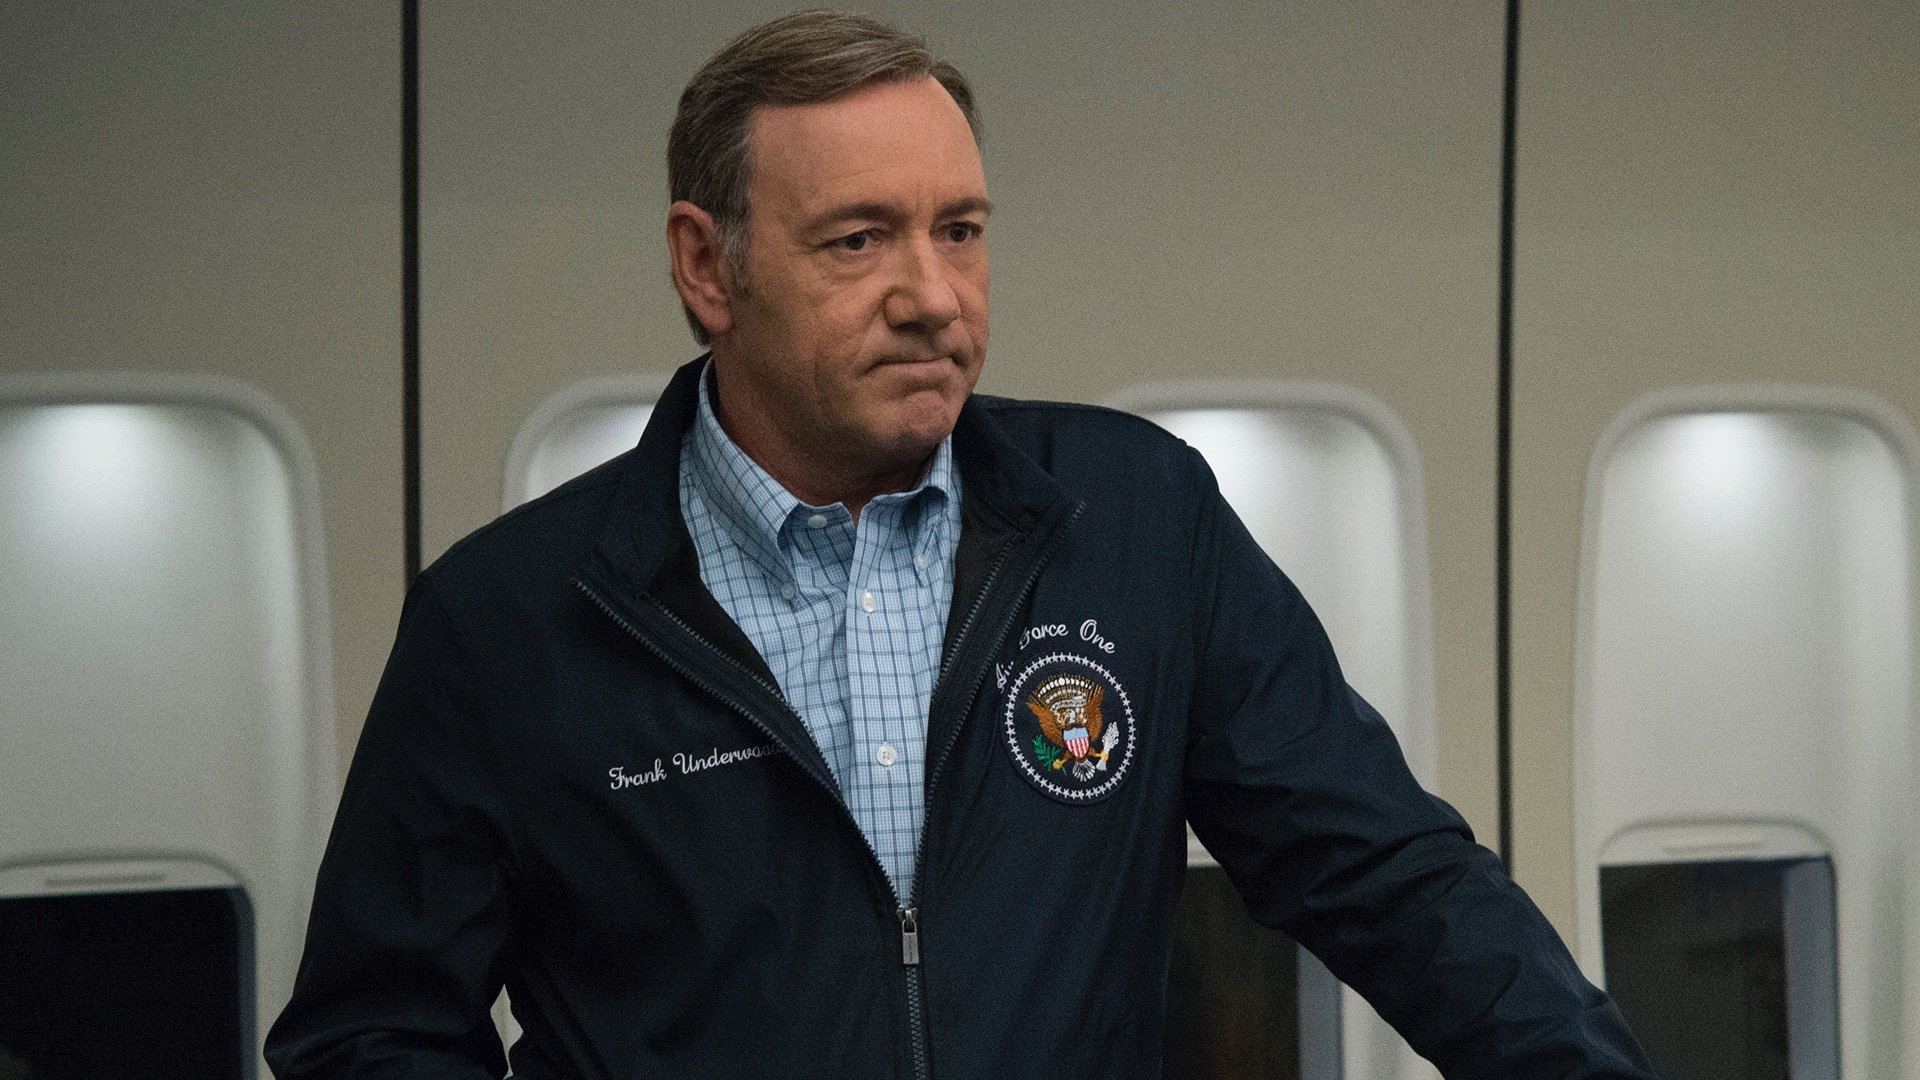 netflix-suspends-production-on-house-of-cards-season-6-indefinitely-social.jpg